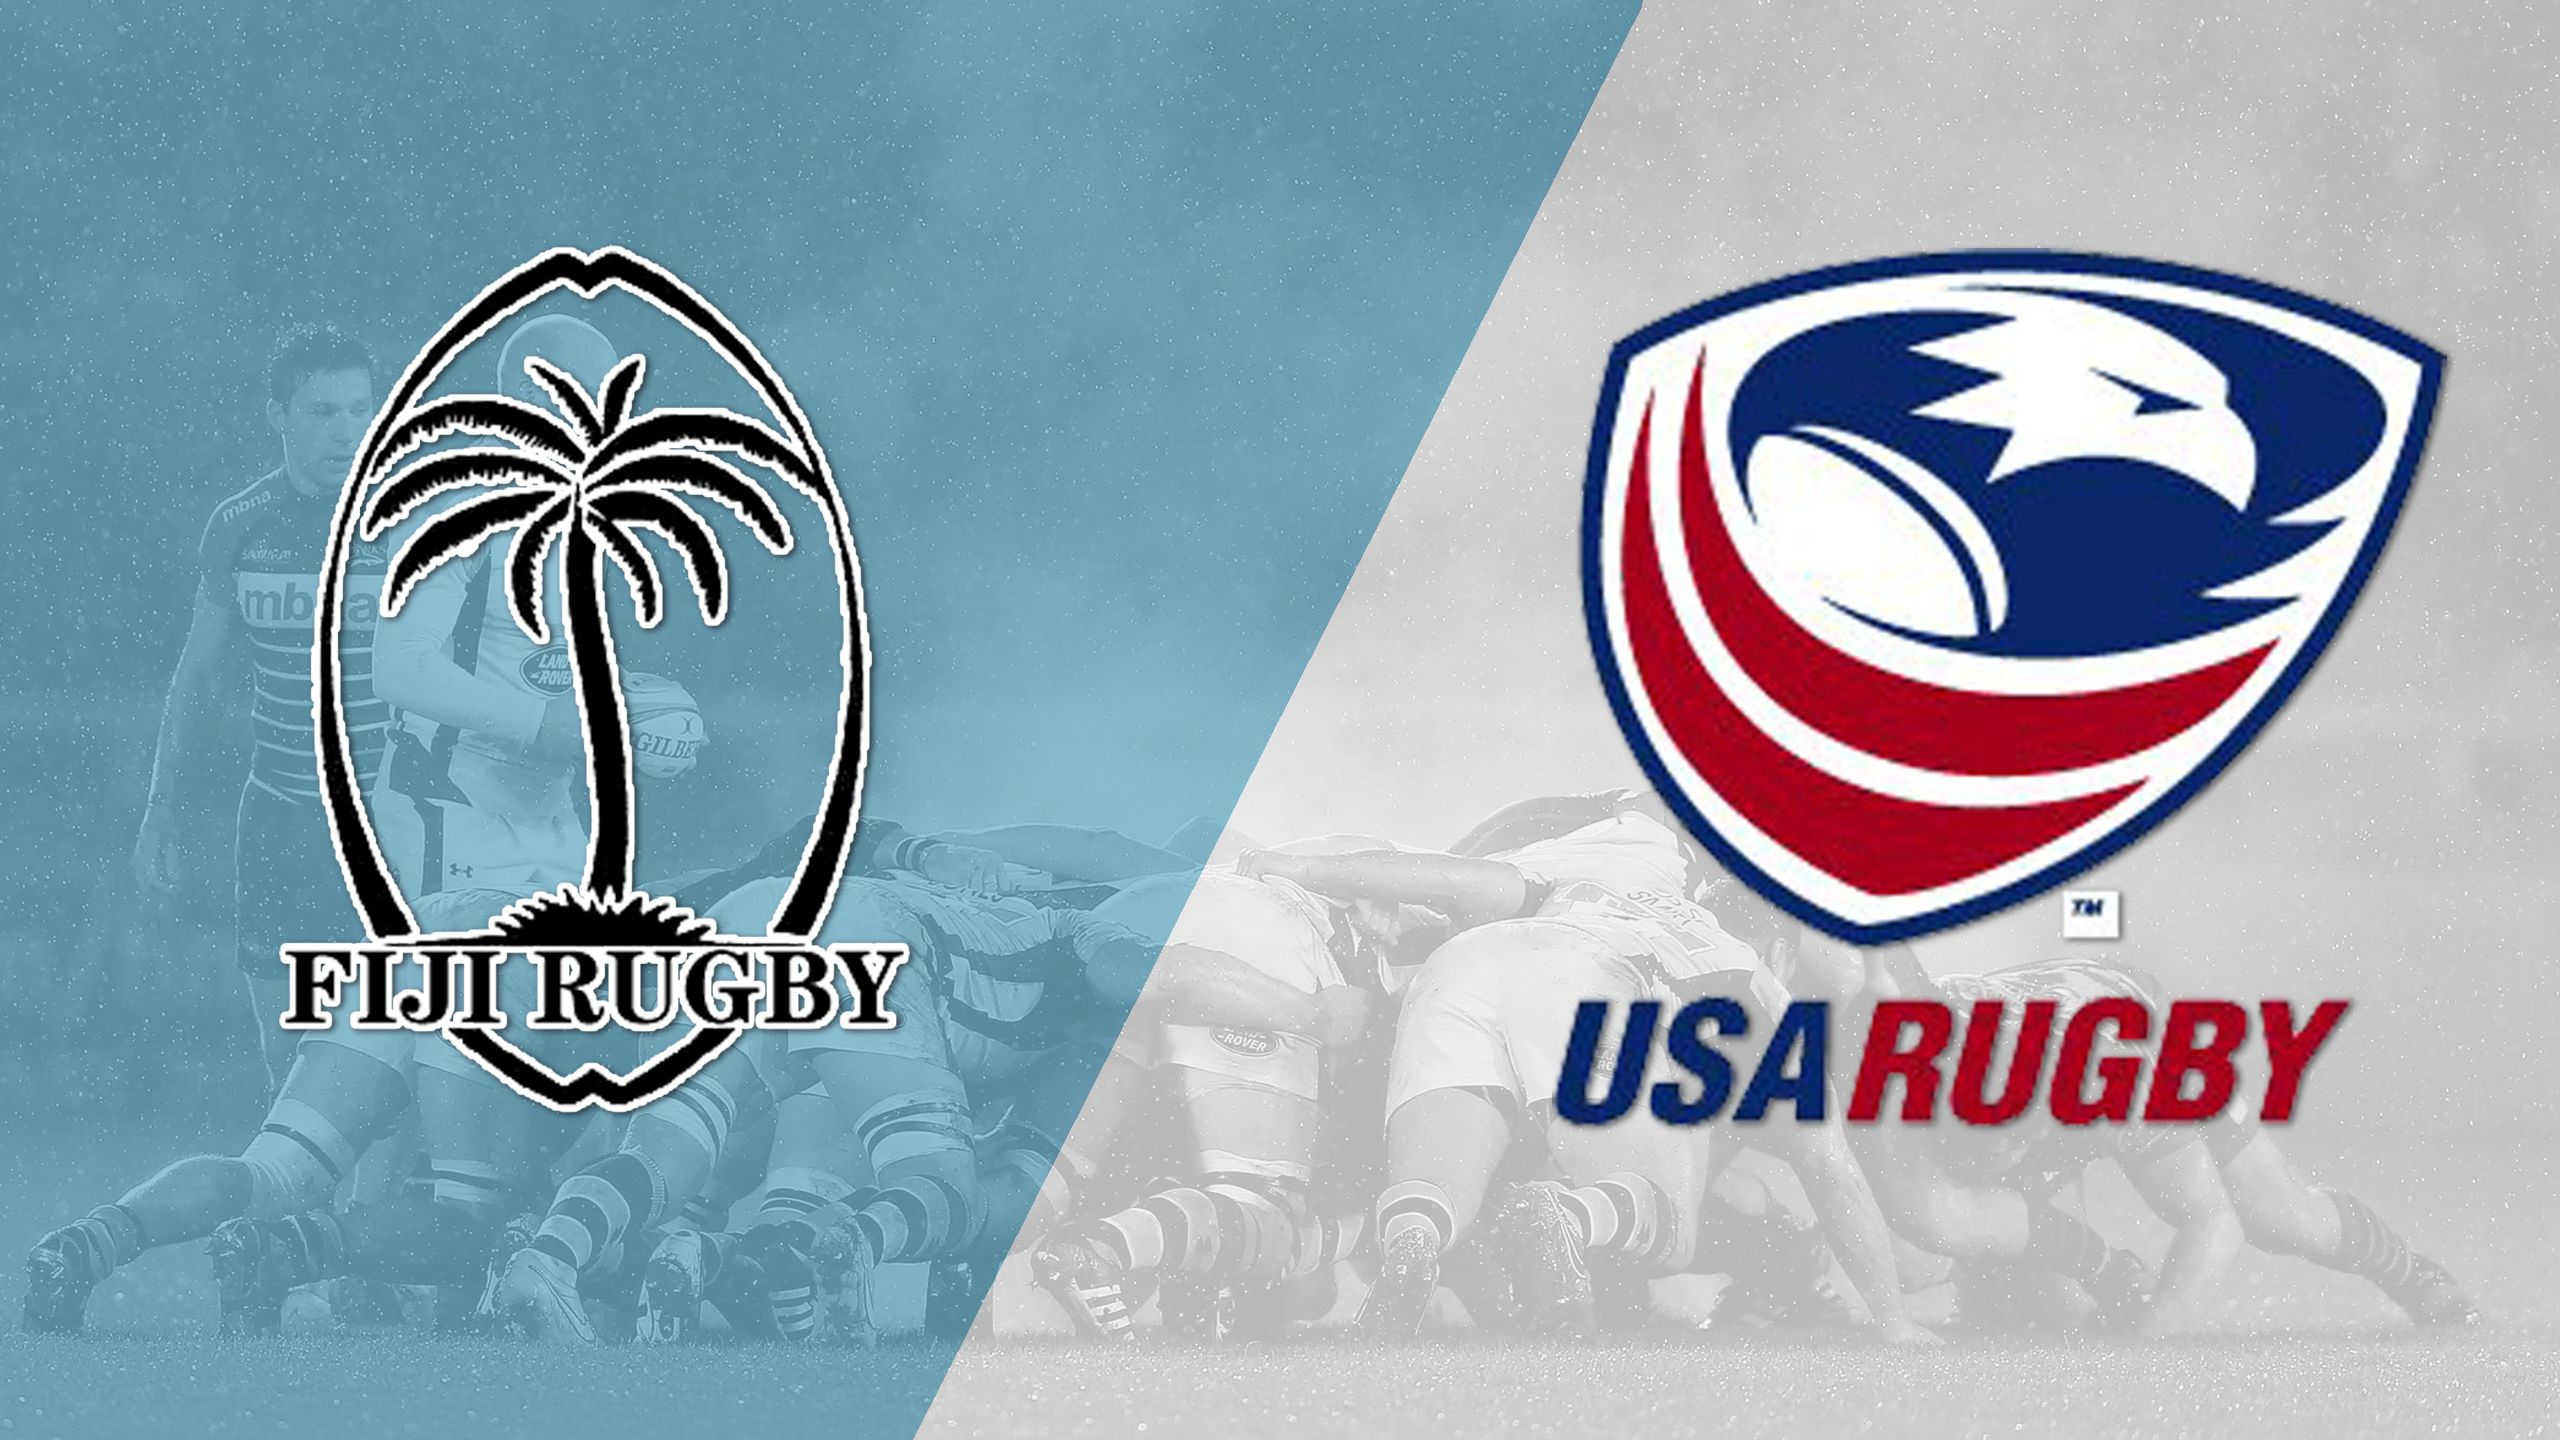 Fiji vs. USA (Cup Quarter Finals) (World Rugby Sevens Series)